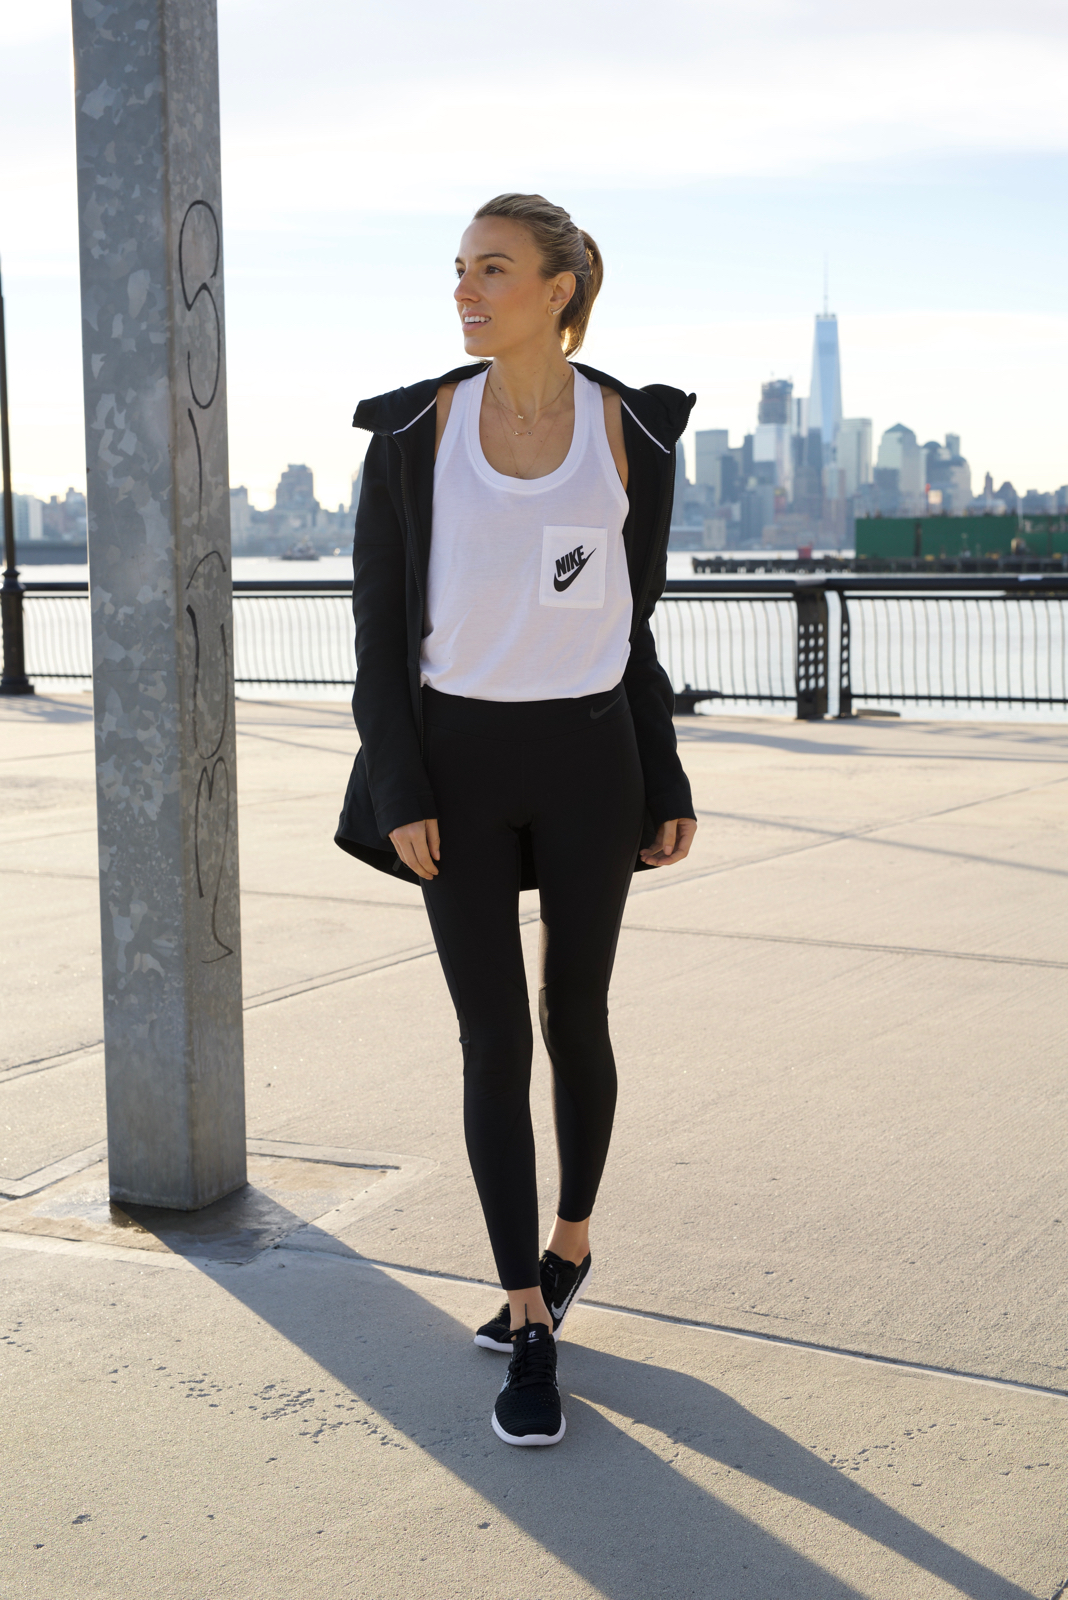 Jack Rabbit NYC, Nike, Workout, Health, Fitness, Fit model, New York, Activewear